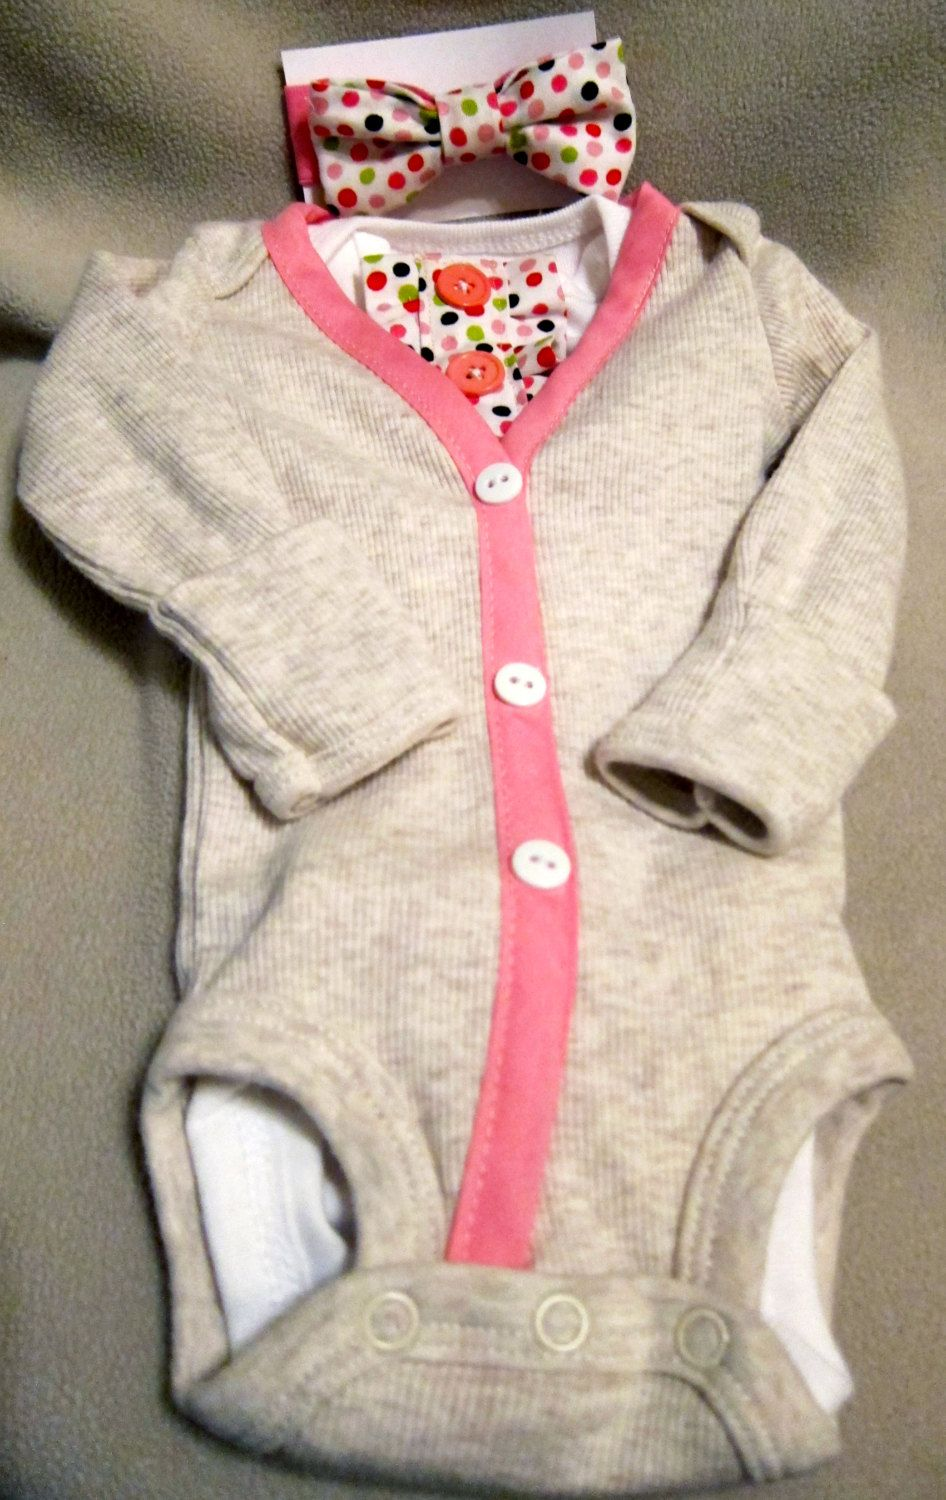 67c27090a0b7 Baby Girl Cardigan Outfit Cream Pink Cardigan by KraftsbyKizzy ...